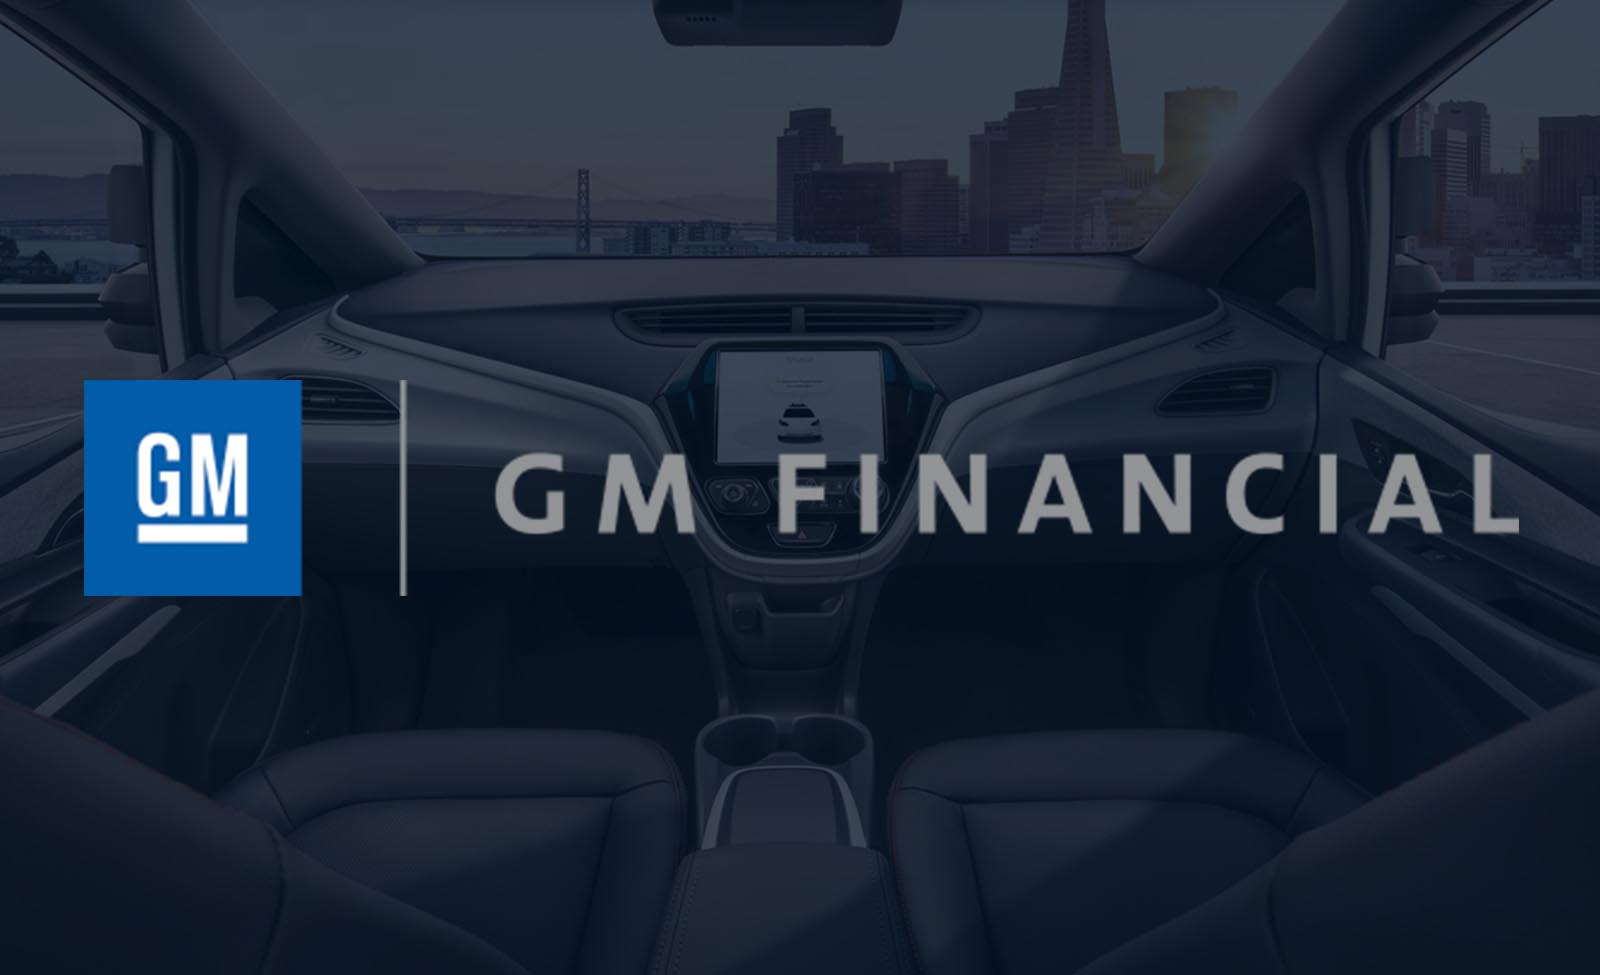 General Motors' Financial Arm Teams Up With Blockchain Startup Spring Labs